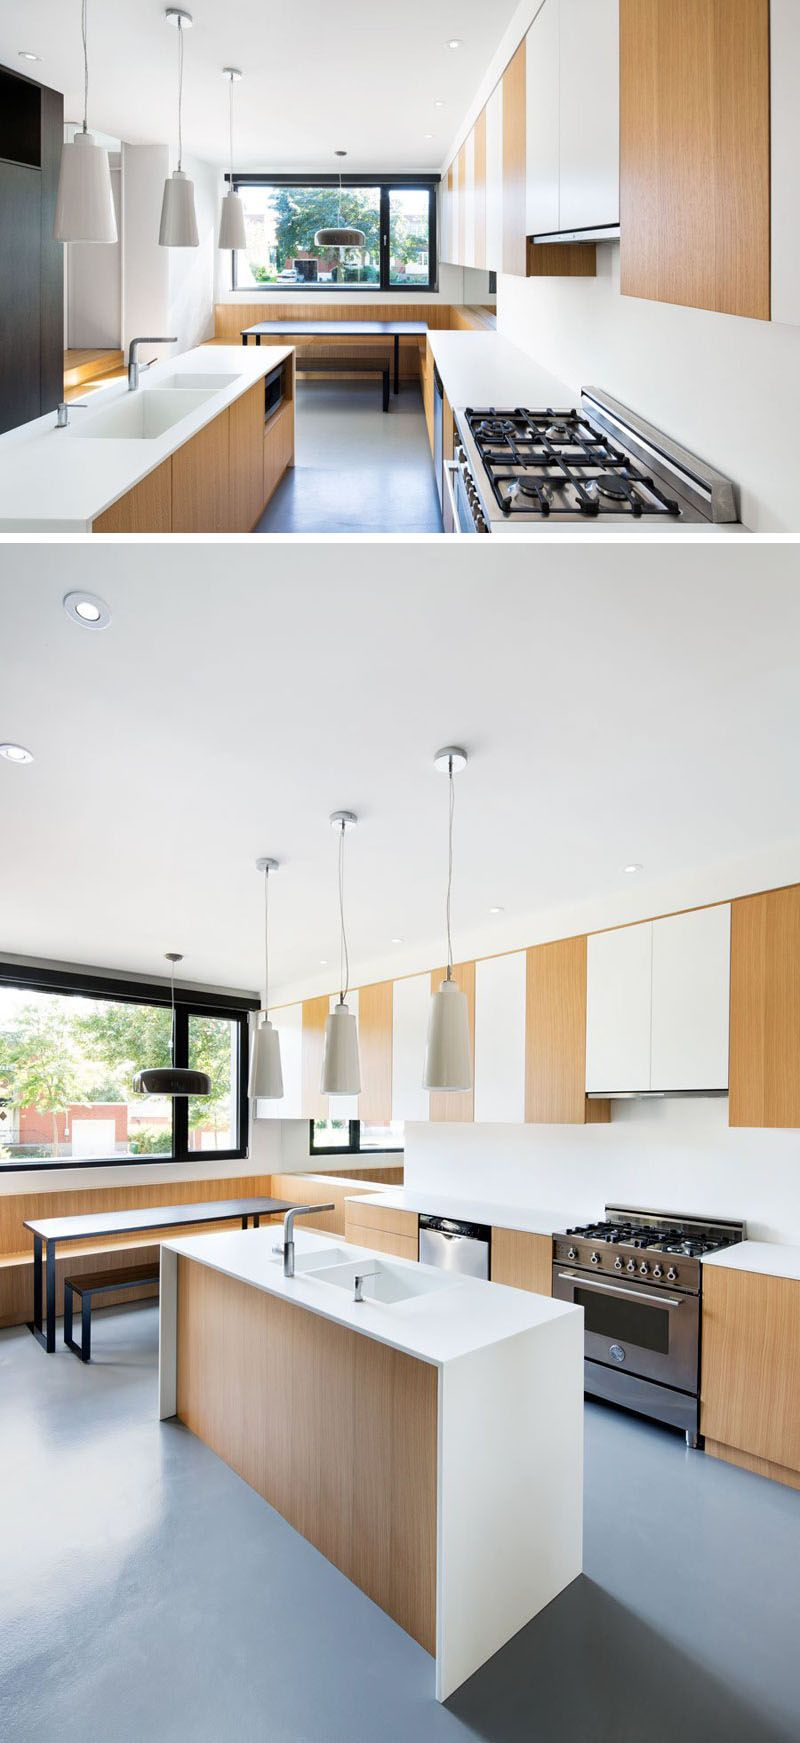 Kitchen Design Idea - Seamless Kitchen Sinks Integrated Into The Countertop // This kitchen island has two sinks that are both made from the same material as the countertop, with no seams between them.